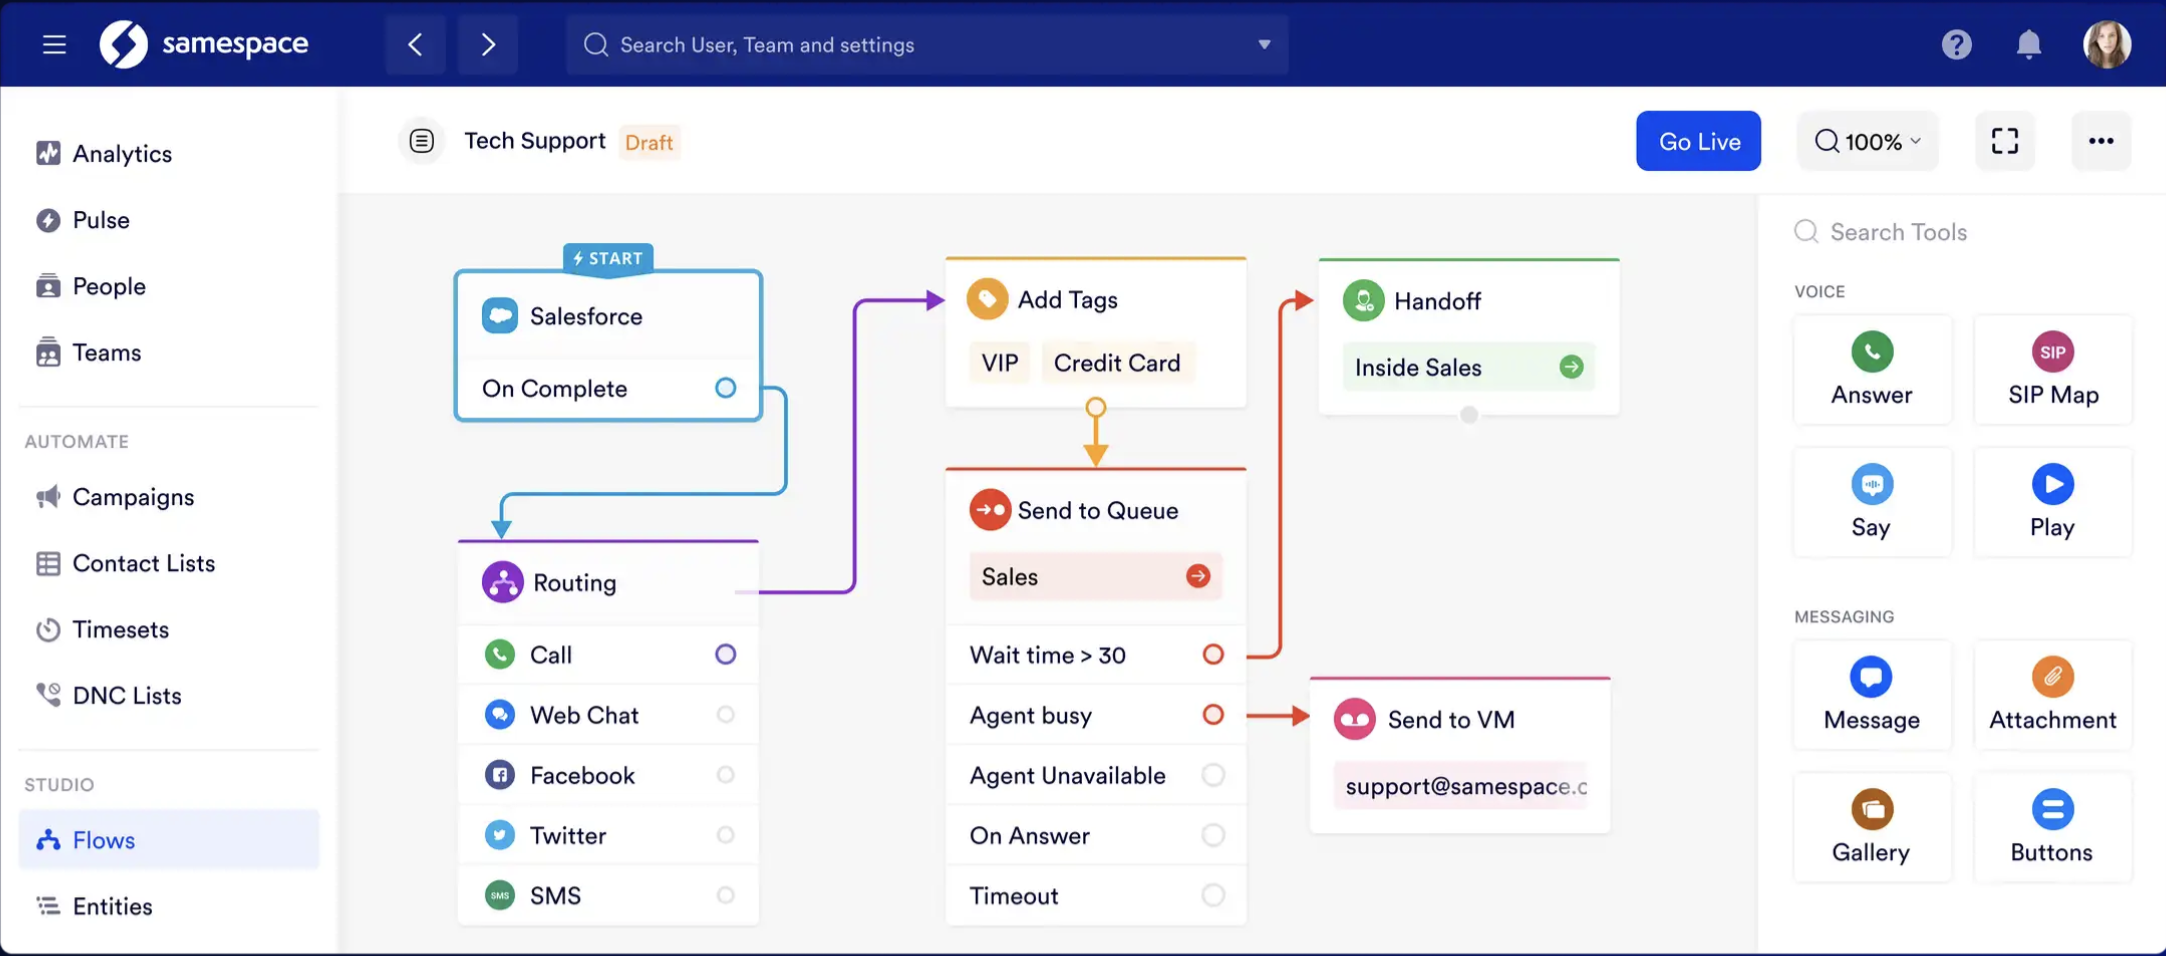 Samespace Studio allows you to build dynamic IVRs including voice, chat and messaging flows.